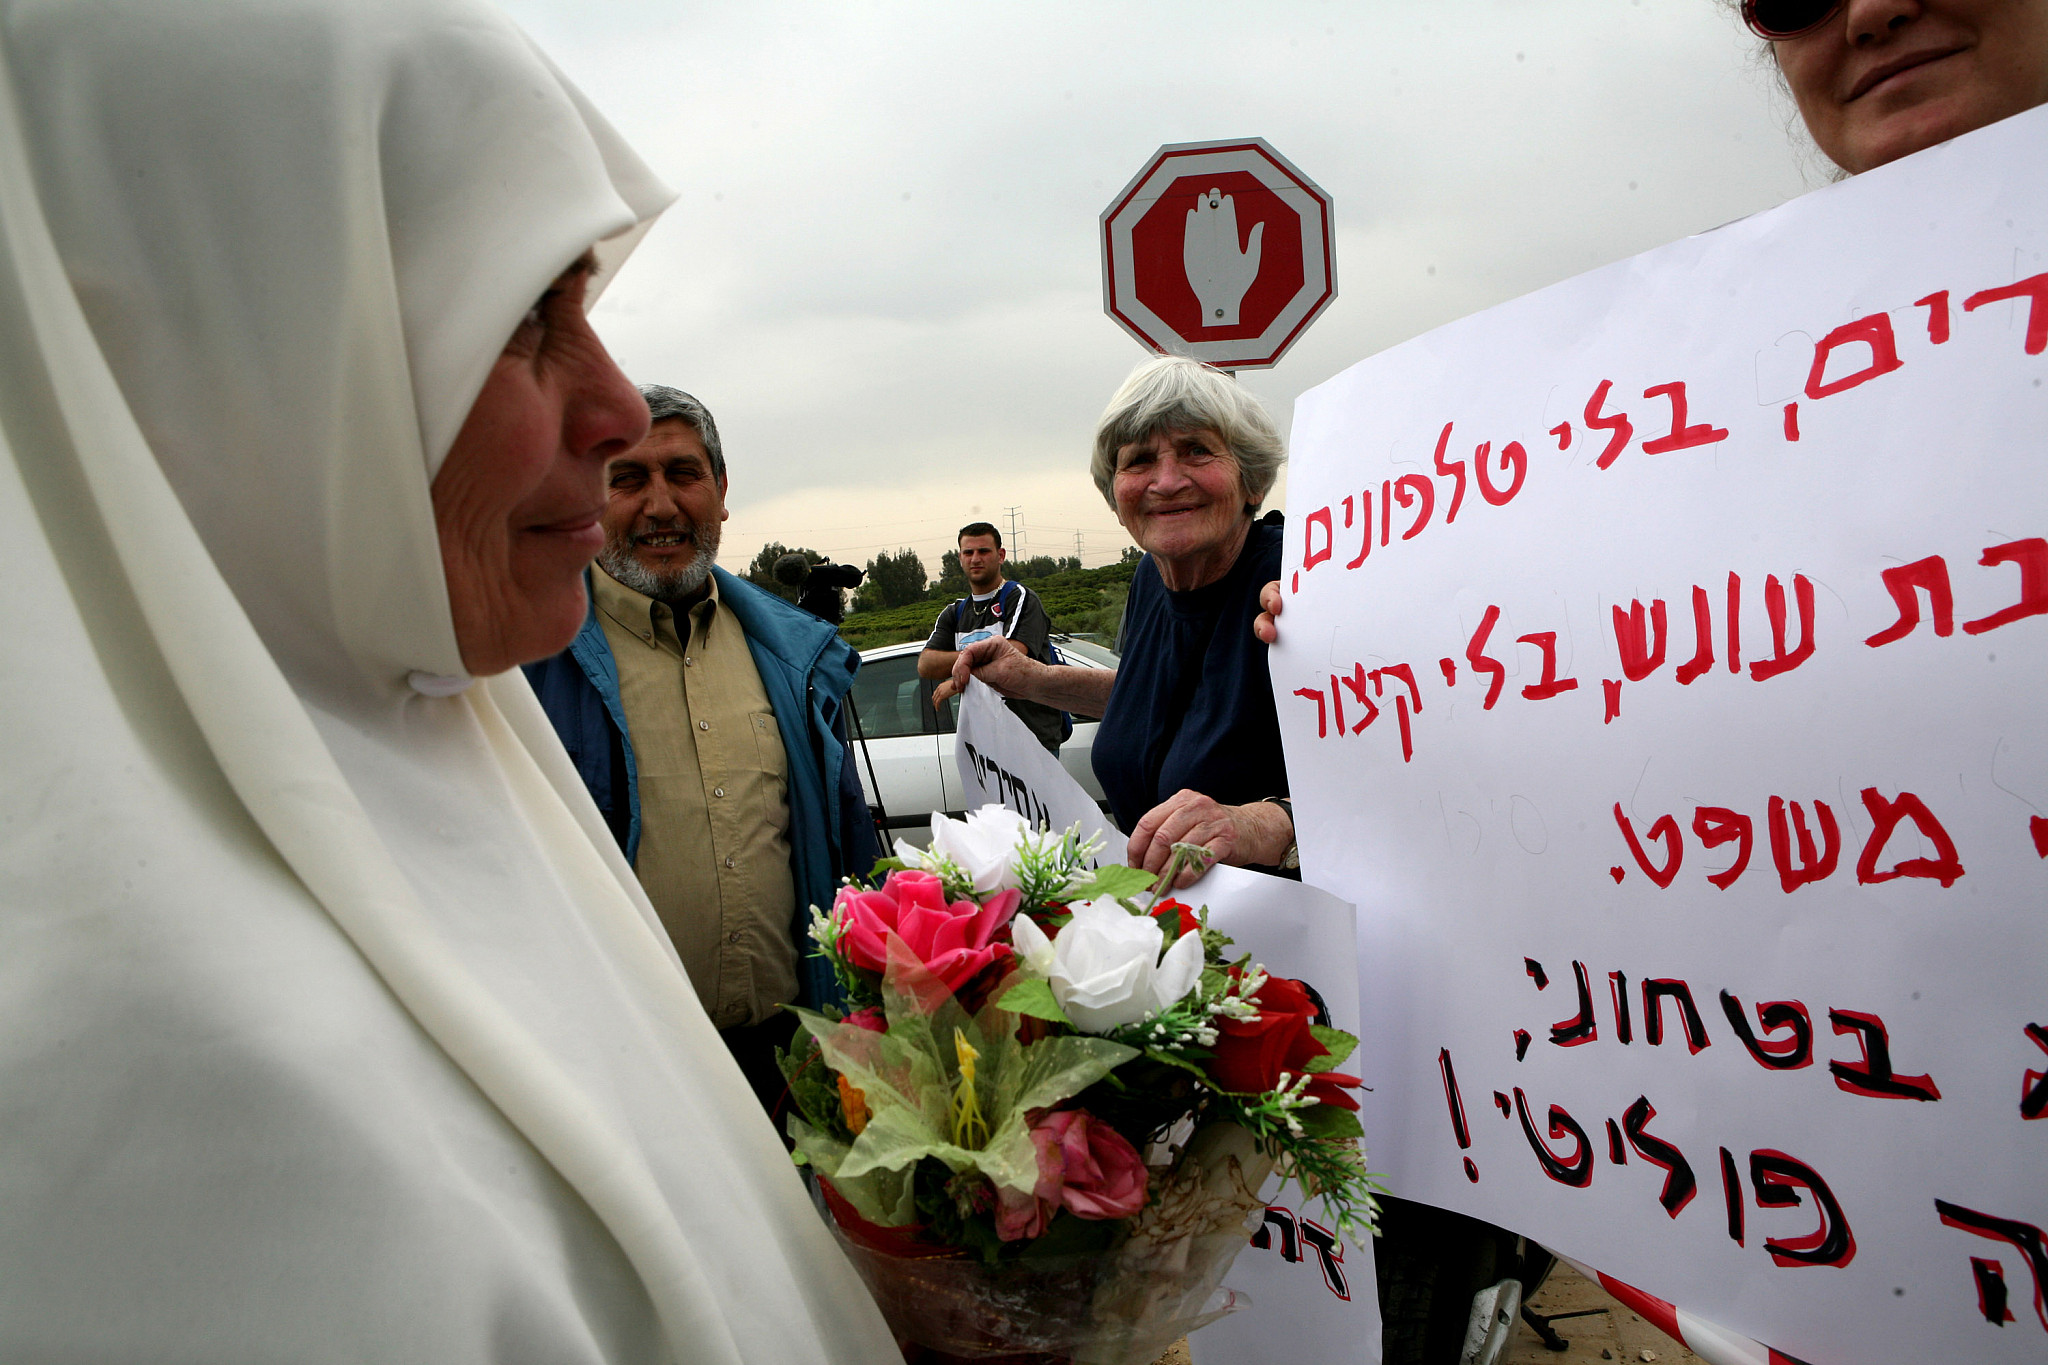 Image: Hava Geller at a solidarity protest in front of Hasharon Prison on Palestinian Prisoners' Day, April 17th, 2007. (Oren Ziv/Activestills.org)